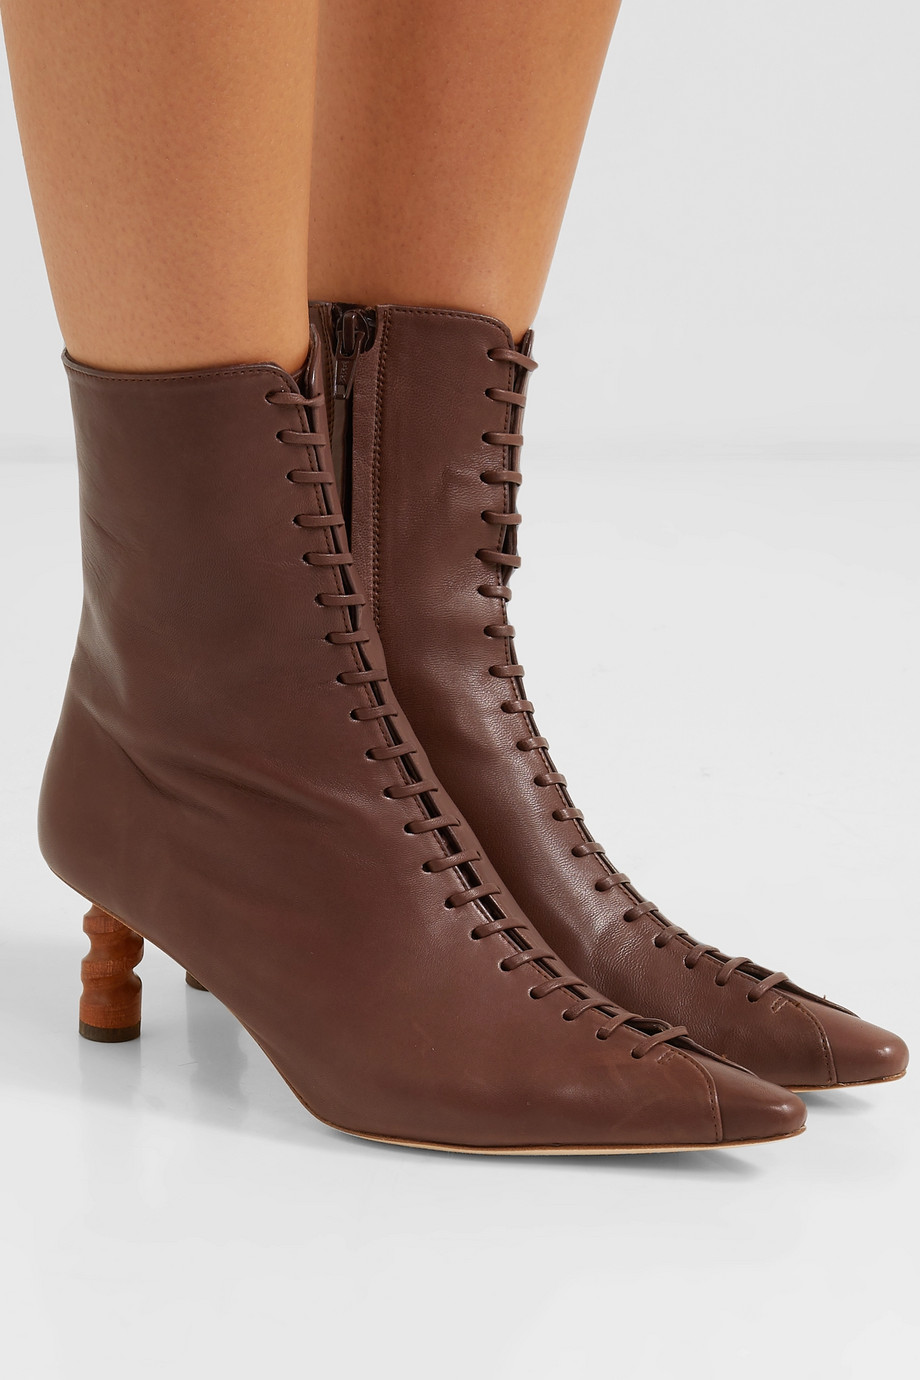 REJINA PYO Simone leather ankle boots